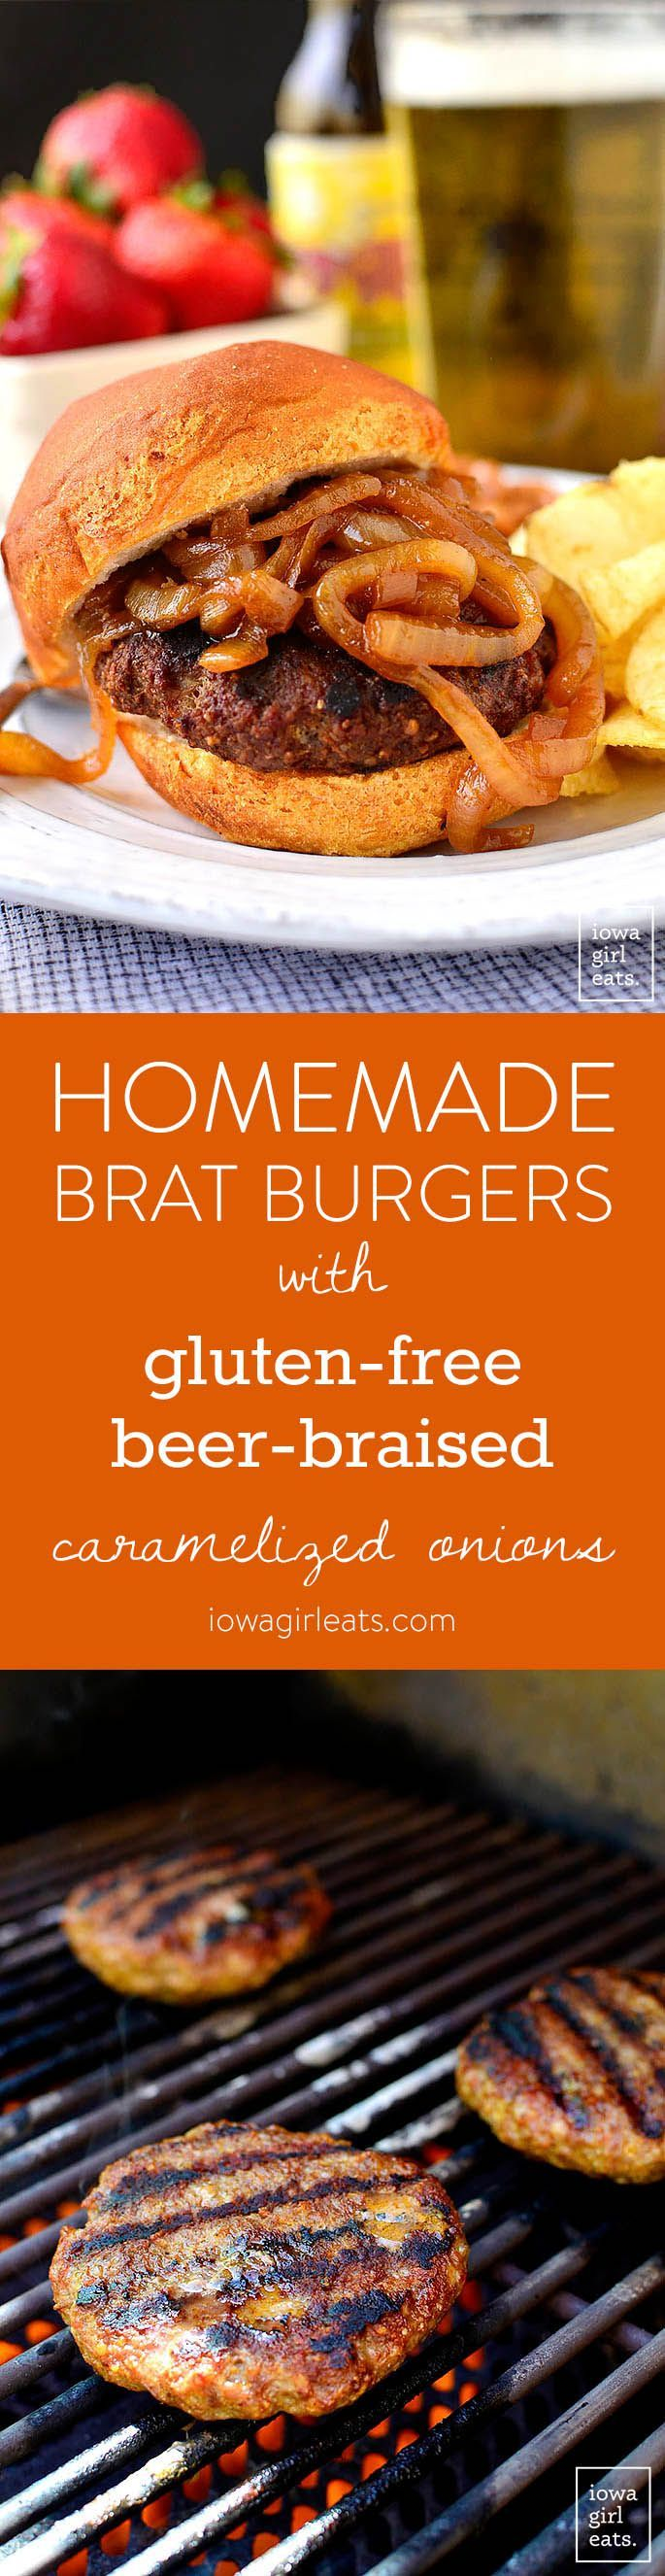 Homemade Brat Burger Homemade Brat Burgers with Gluten-Free Beer-Braised Caramelized Onions are homemade brat patties (just meat and spices,) topped with luscious, gluten-free beer-spiked onions. You'll be making this smooth grilling technique all summer long! | iowagirleats.com